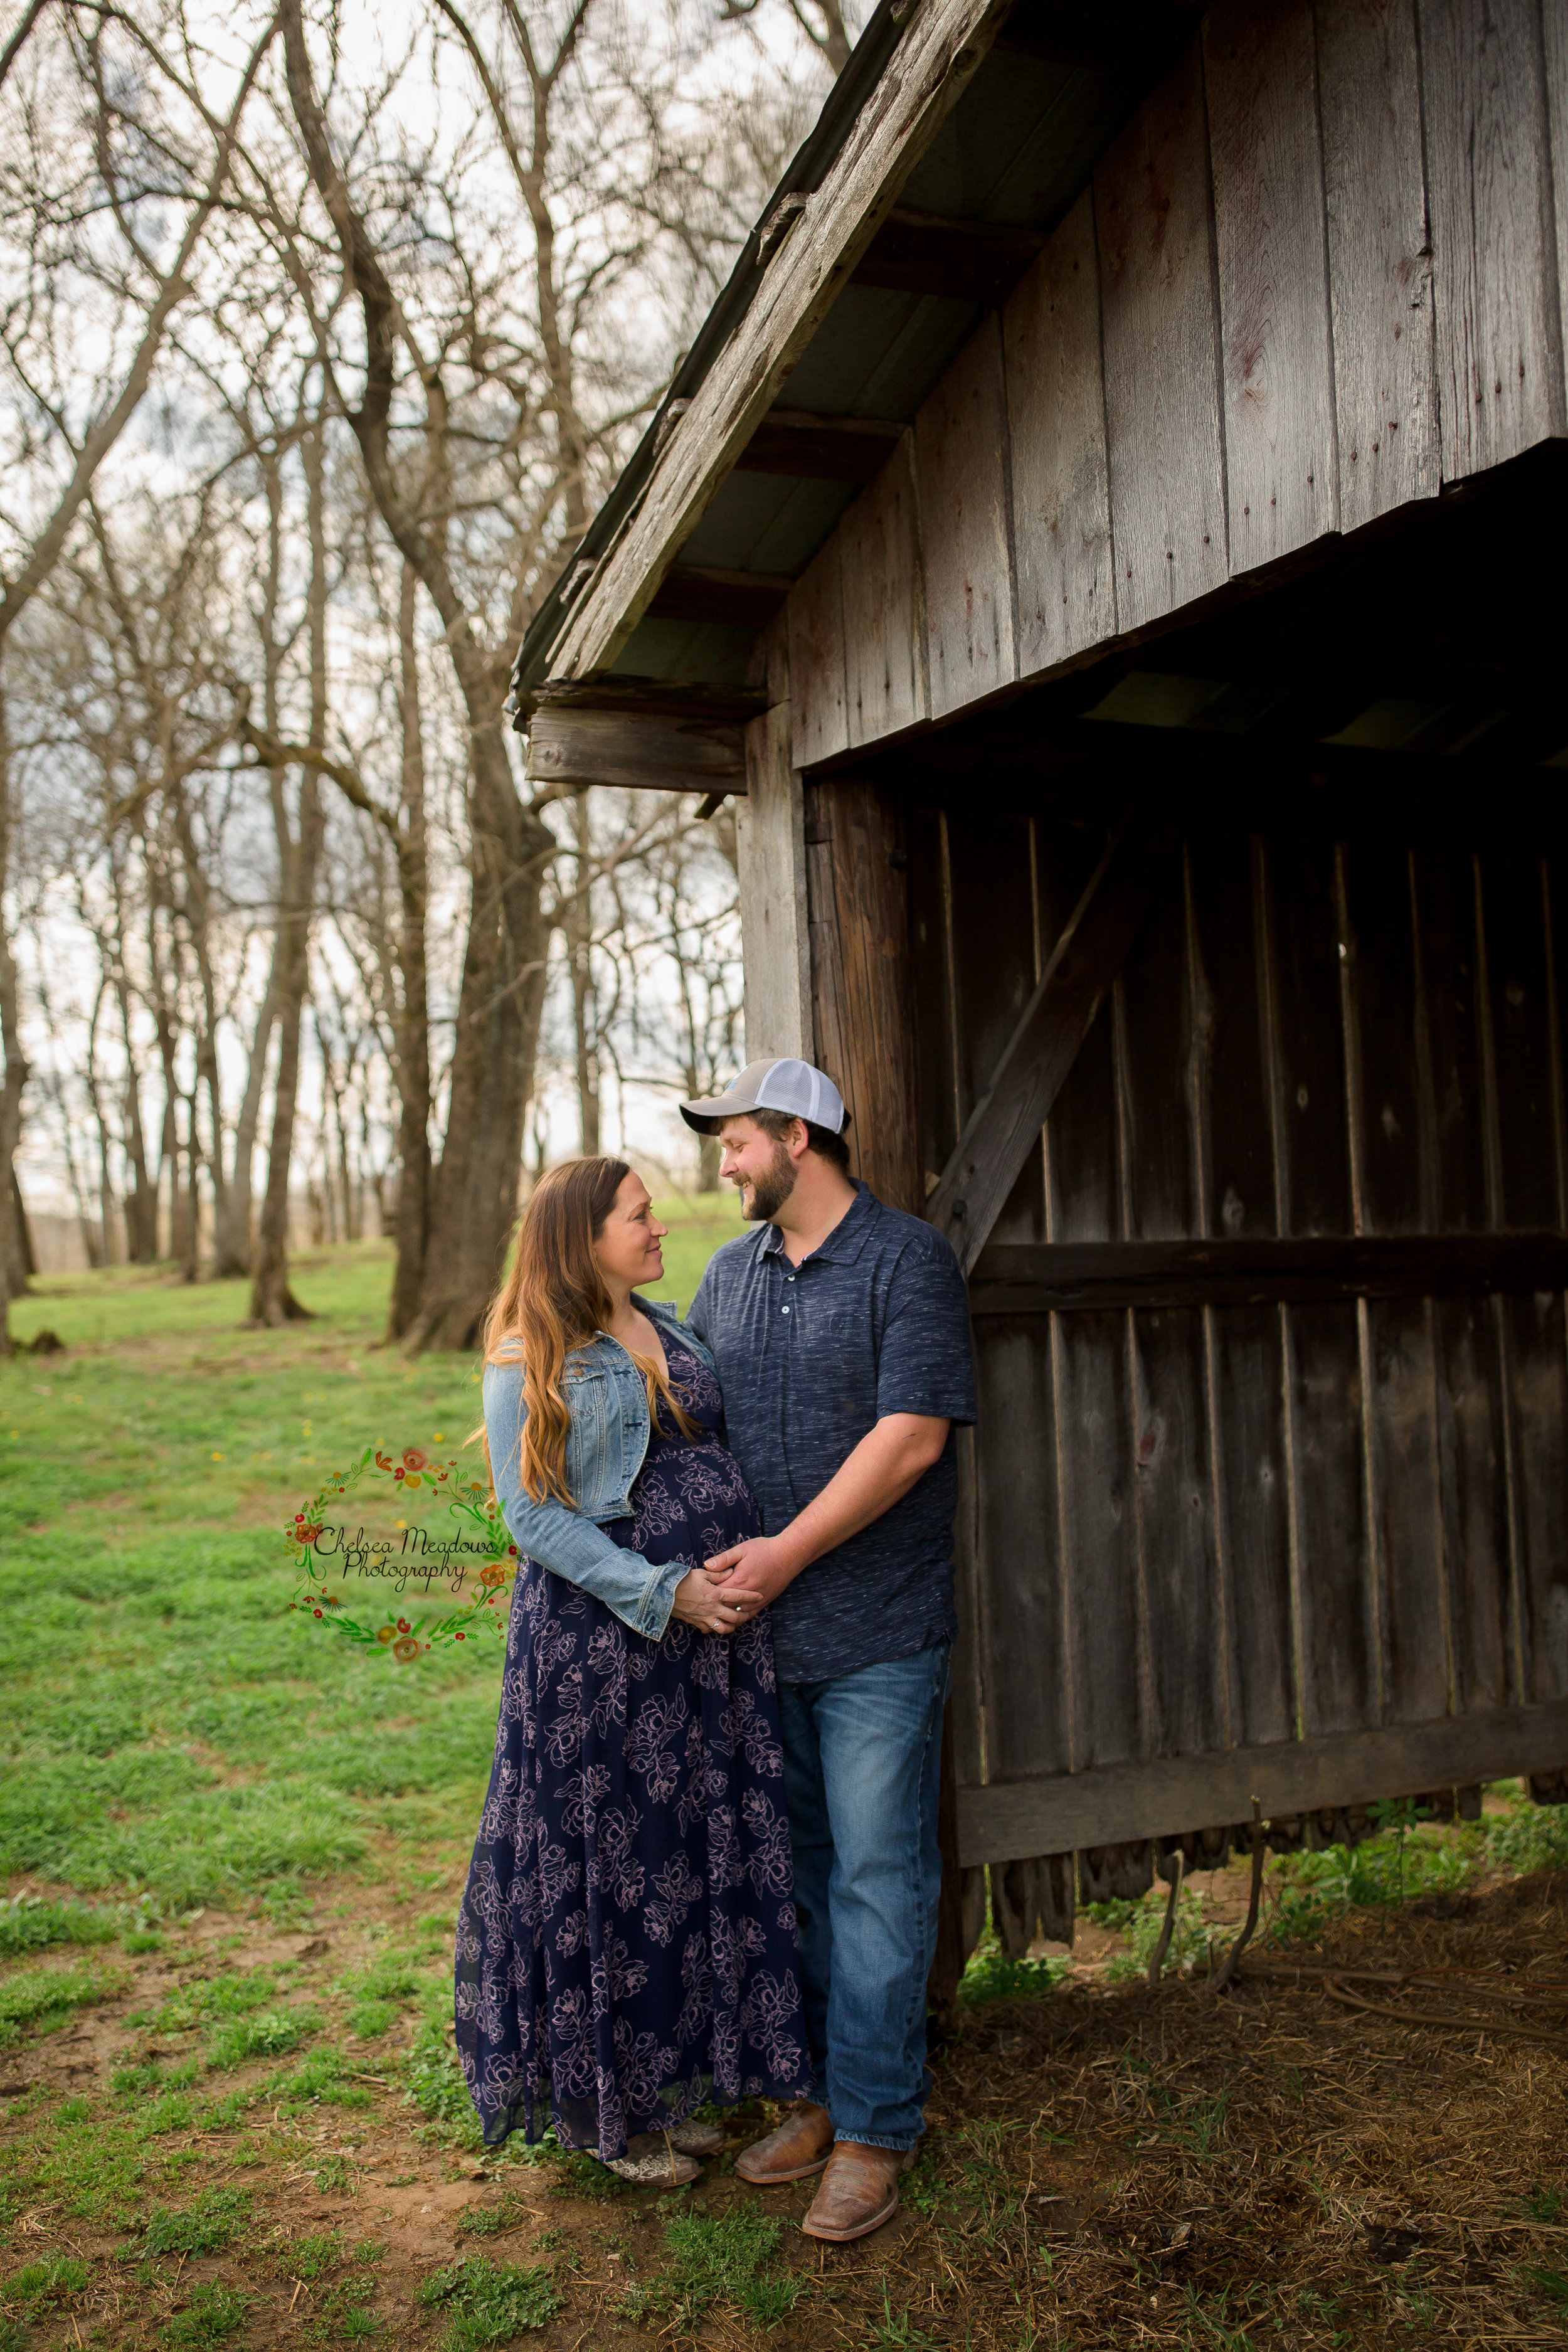 Gann Maternity Session - Nashville Maternity Photographer - Chelsea Meadows Photography (17).jpg